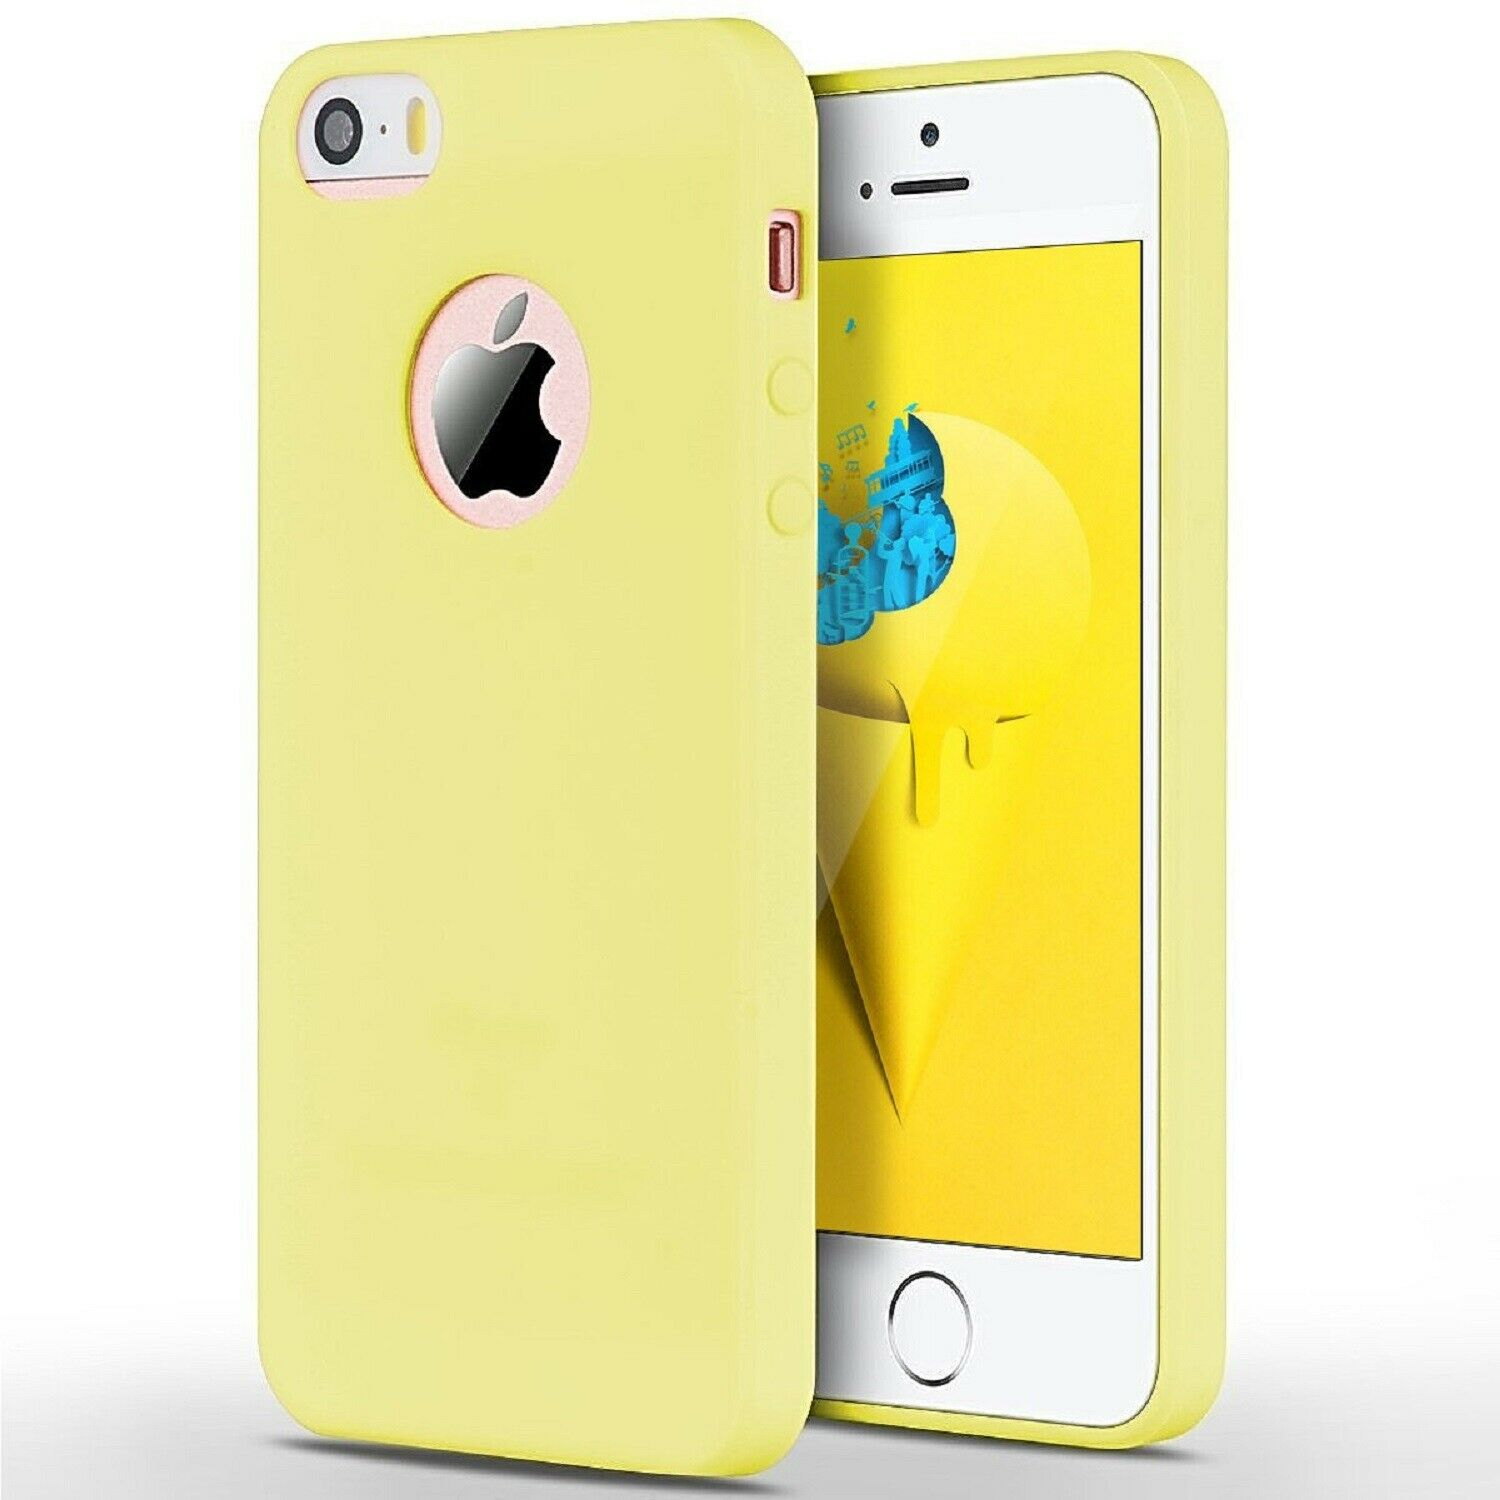 Funda Carcasa Case Iphone Silicona Flexible Ultra Fina Tpu Suave Compatible con iphone XR AMARILLO Agujero